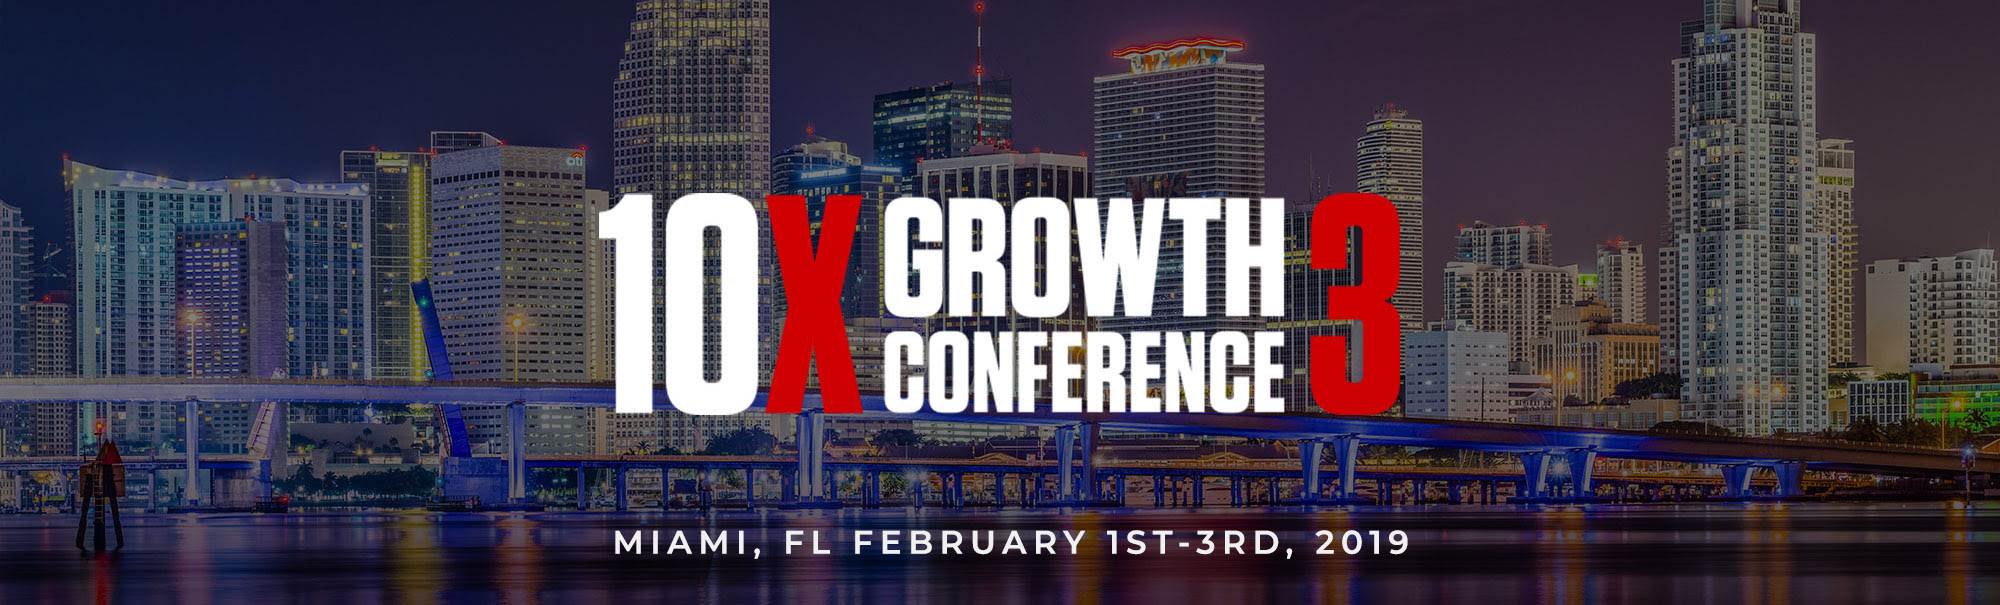 time for 10X Growth Con 3